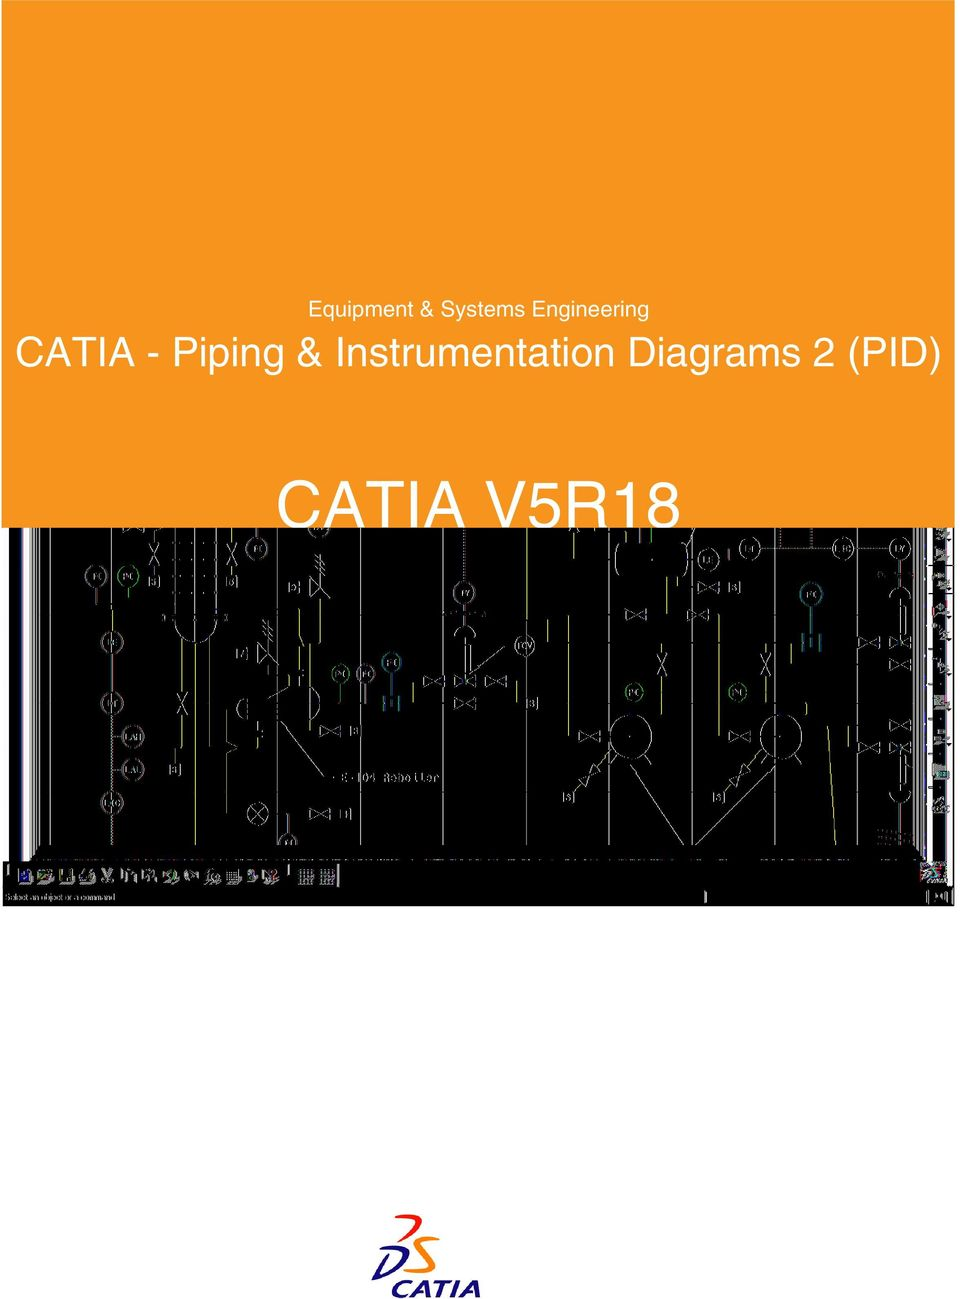 medium resolution of 2 equipment systems engineering catia piping instrumentation diagrams provide a complete set of tools to create modify analyze and document the